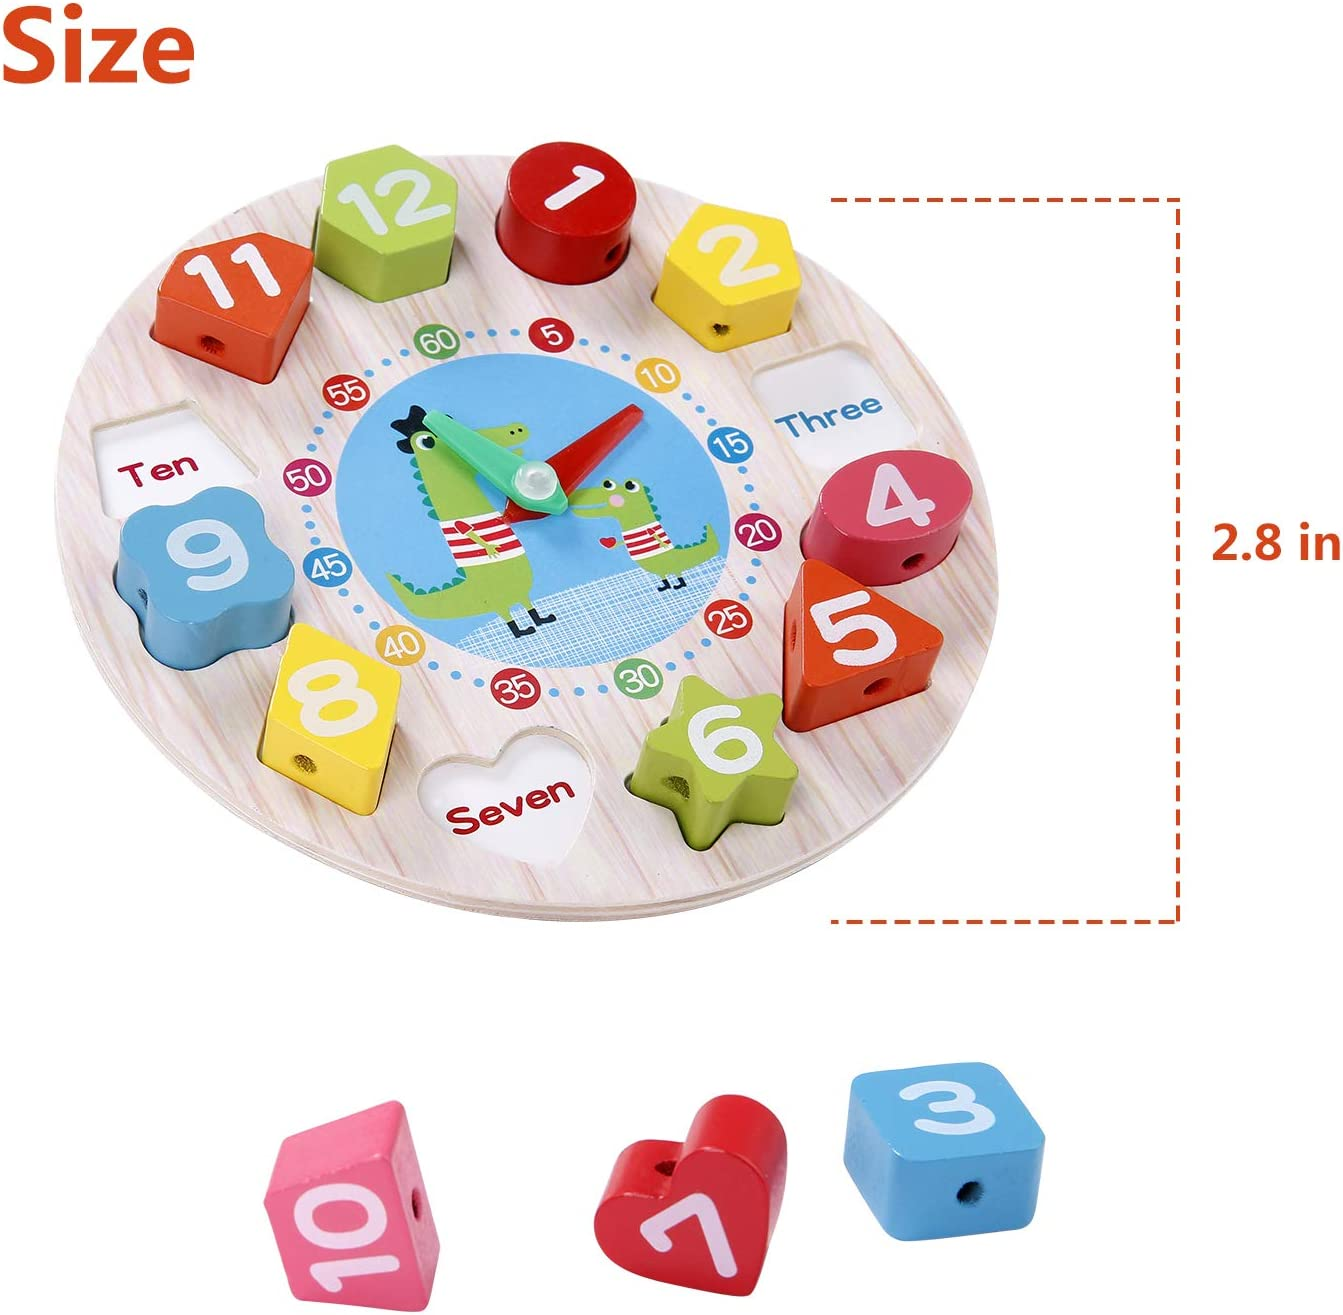 Teaching Time Number Color Blocks Shape Puzzles Stacking Sorter Jigsaw Montessori Early Learning Educational Toys Gift for 1 2 3 Year Baby Toddler Kids TOHIBEE Wooden Shape Sorting Clock